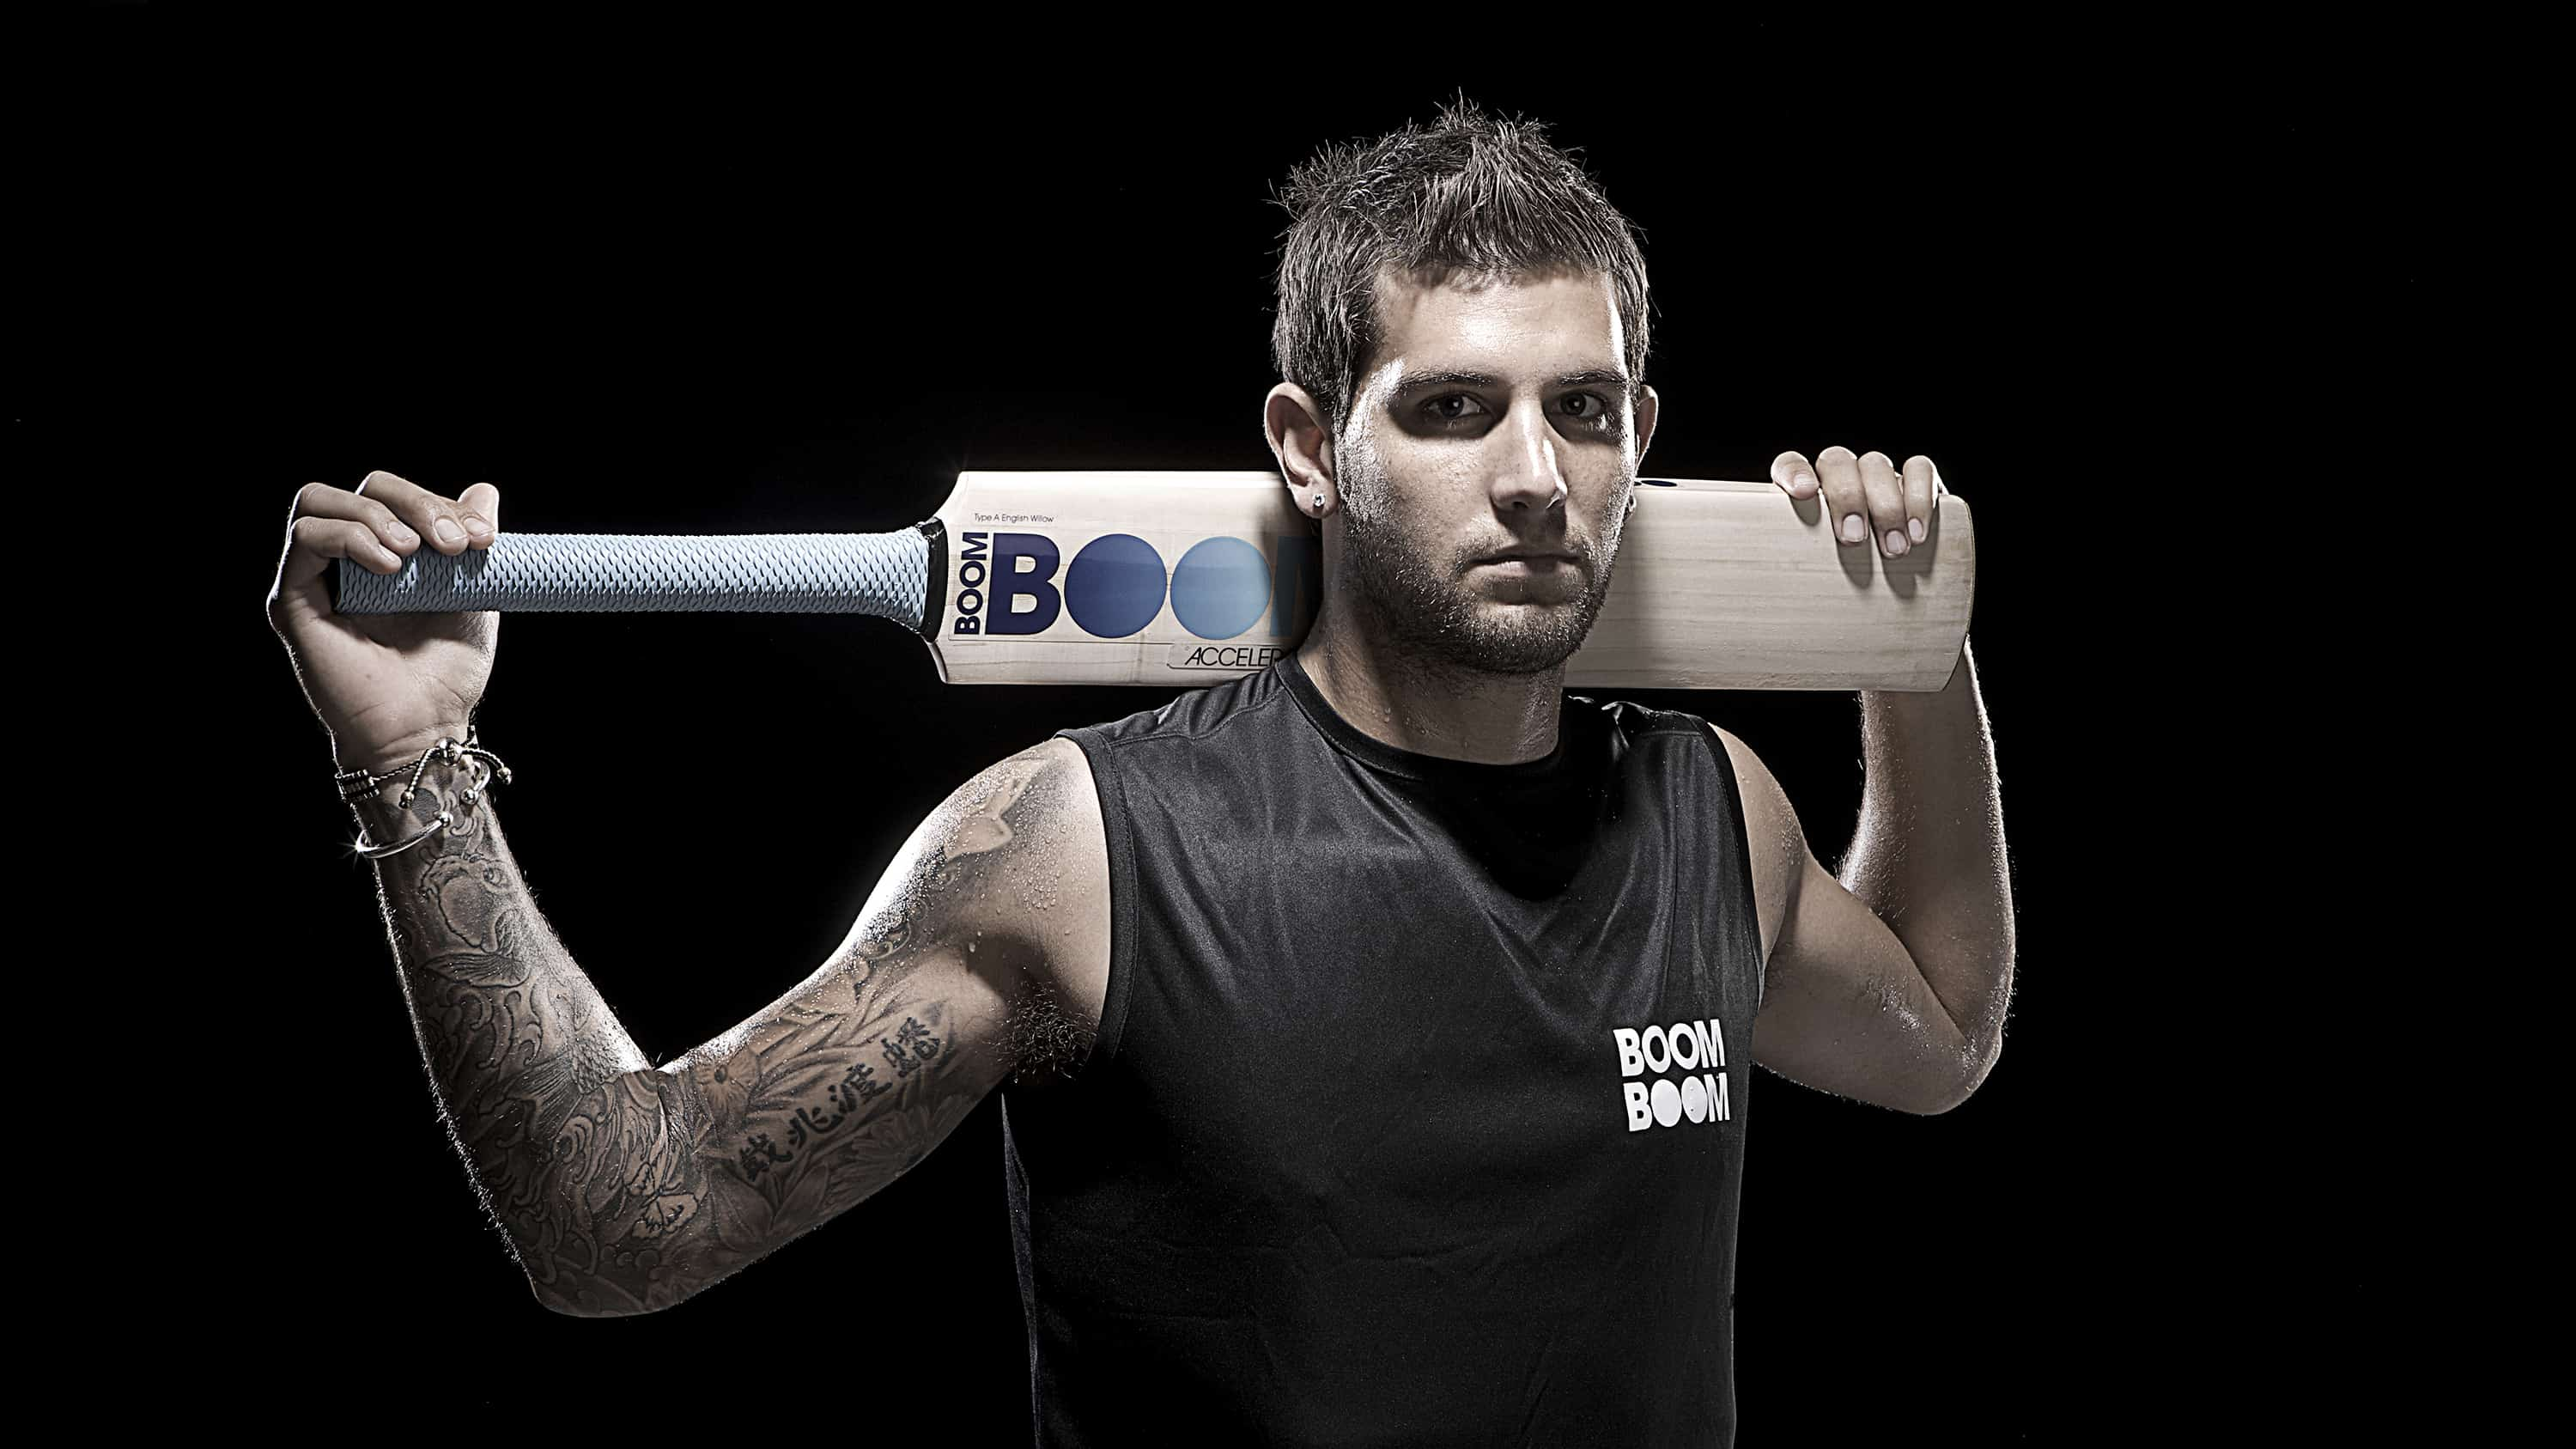 dramatic portrait of England cricketer Jade Dernbach by Ross Vincent